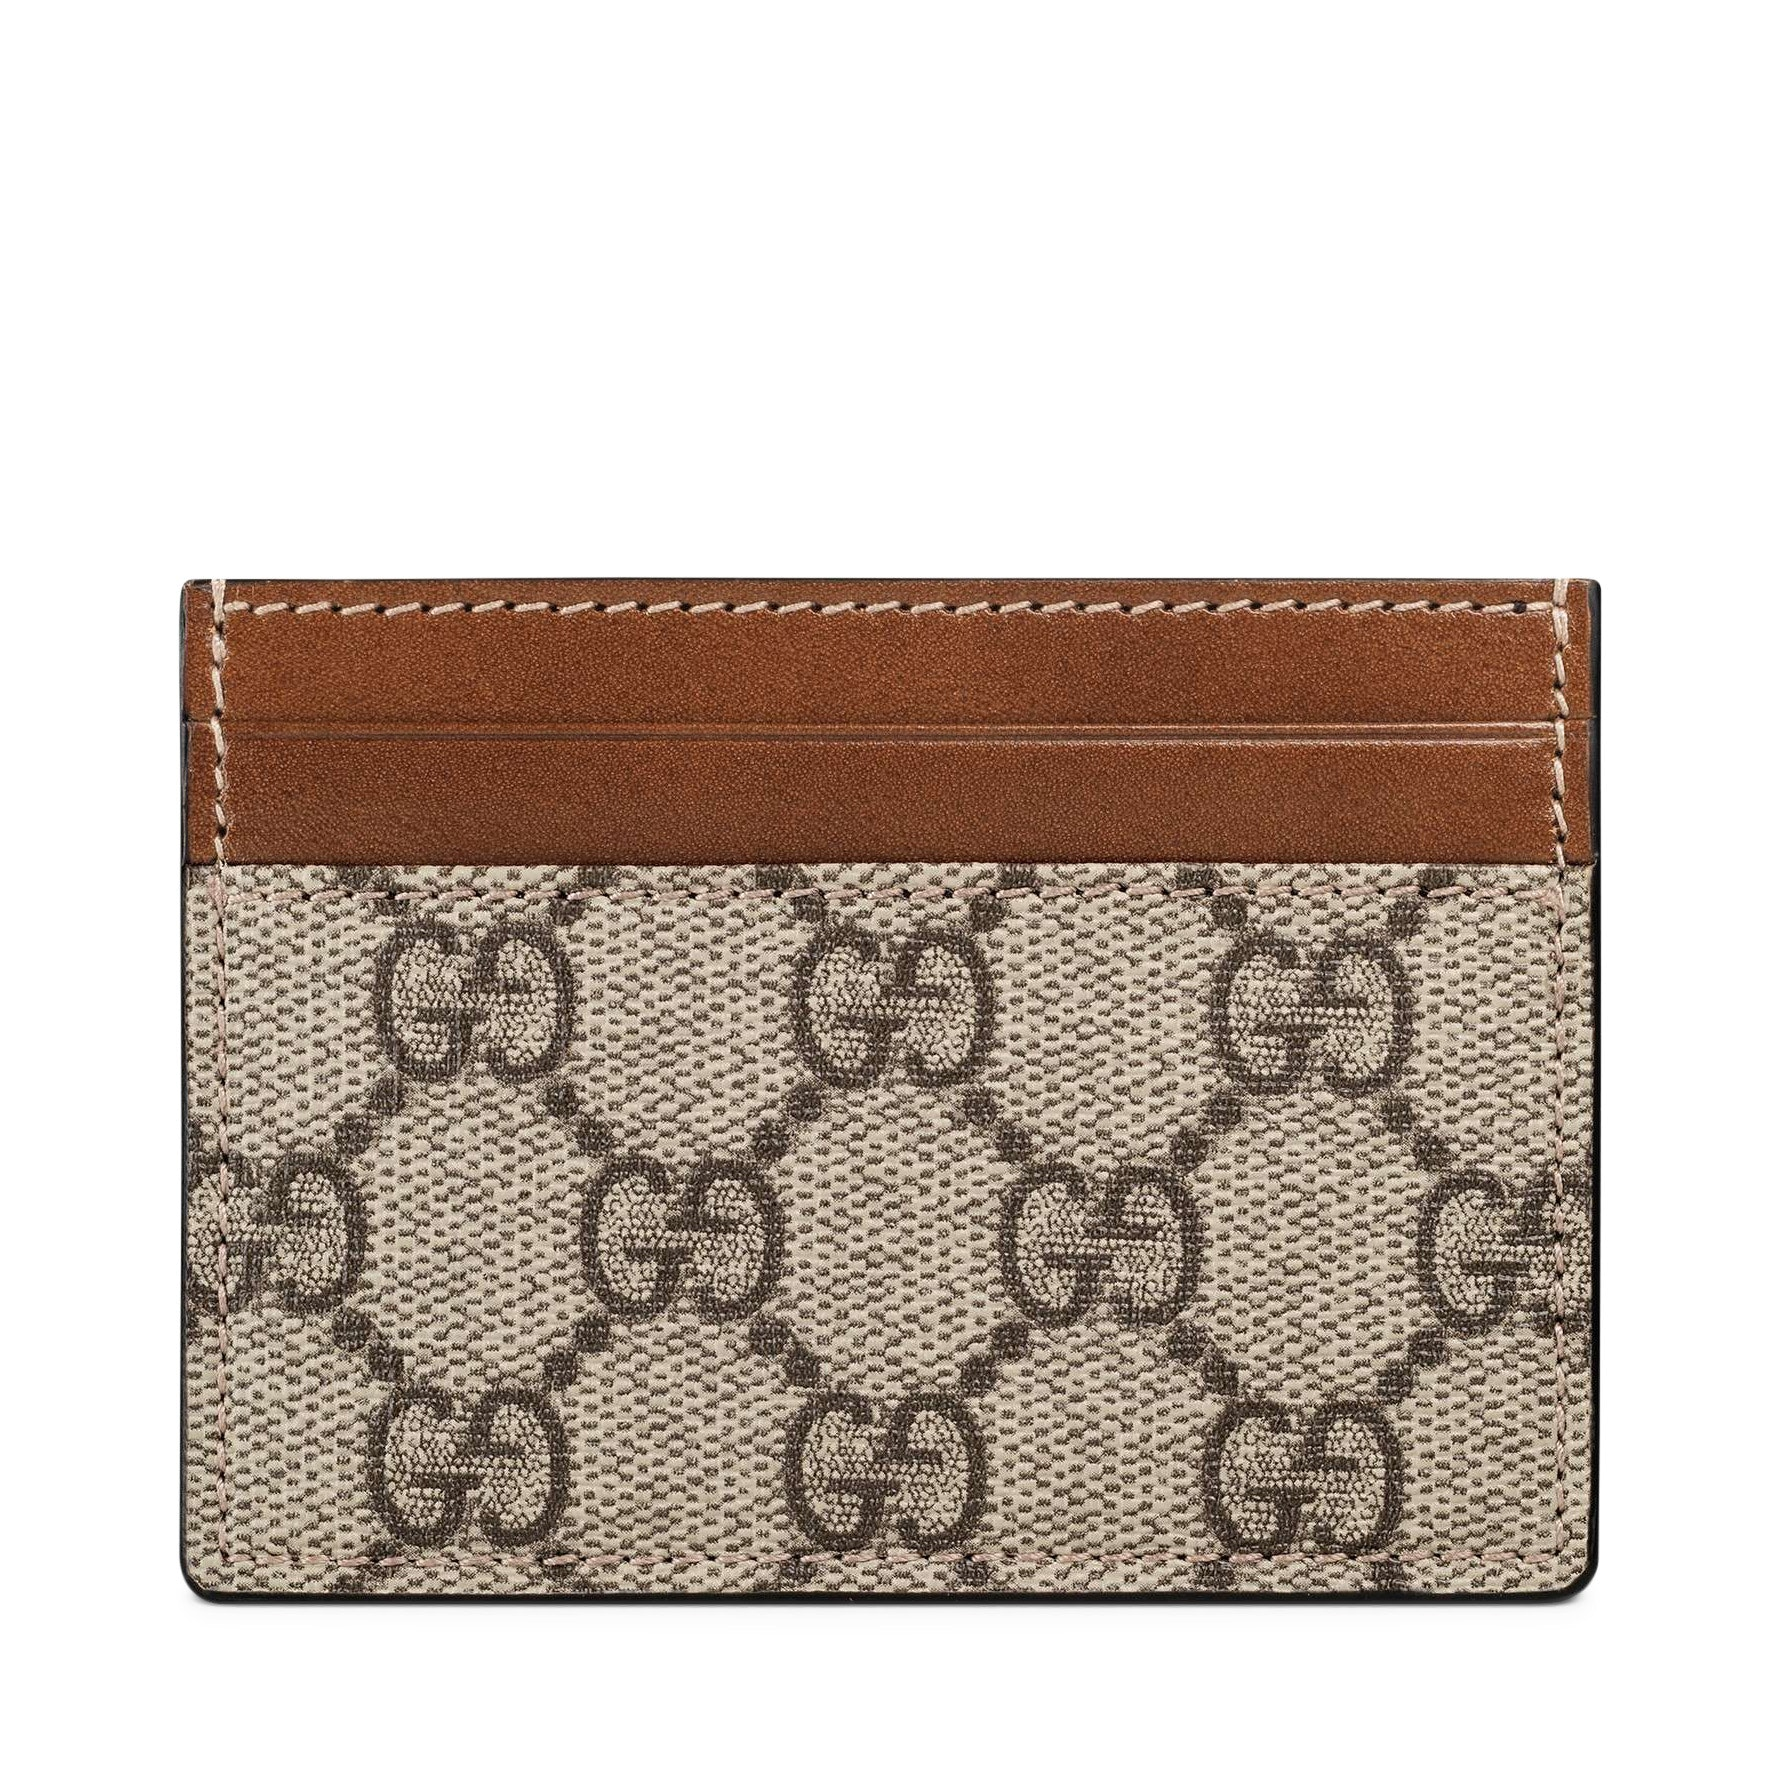 Gucci Card Case GG Supreme Mini Beige/Ebony Light Brown